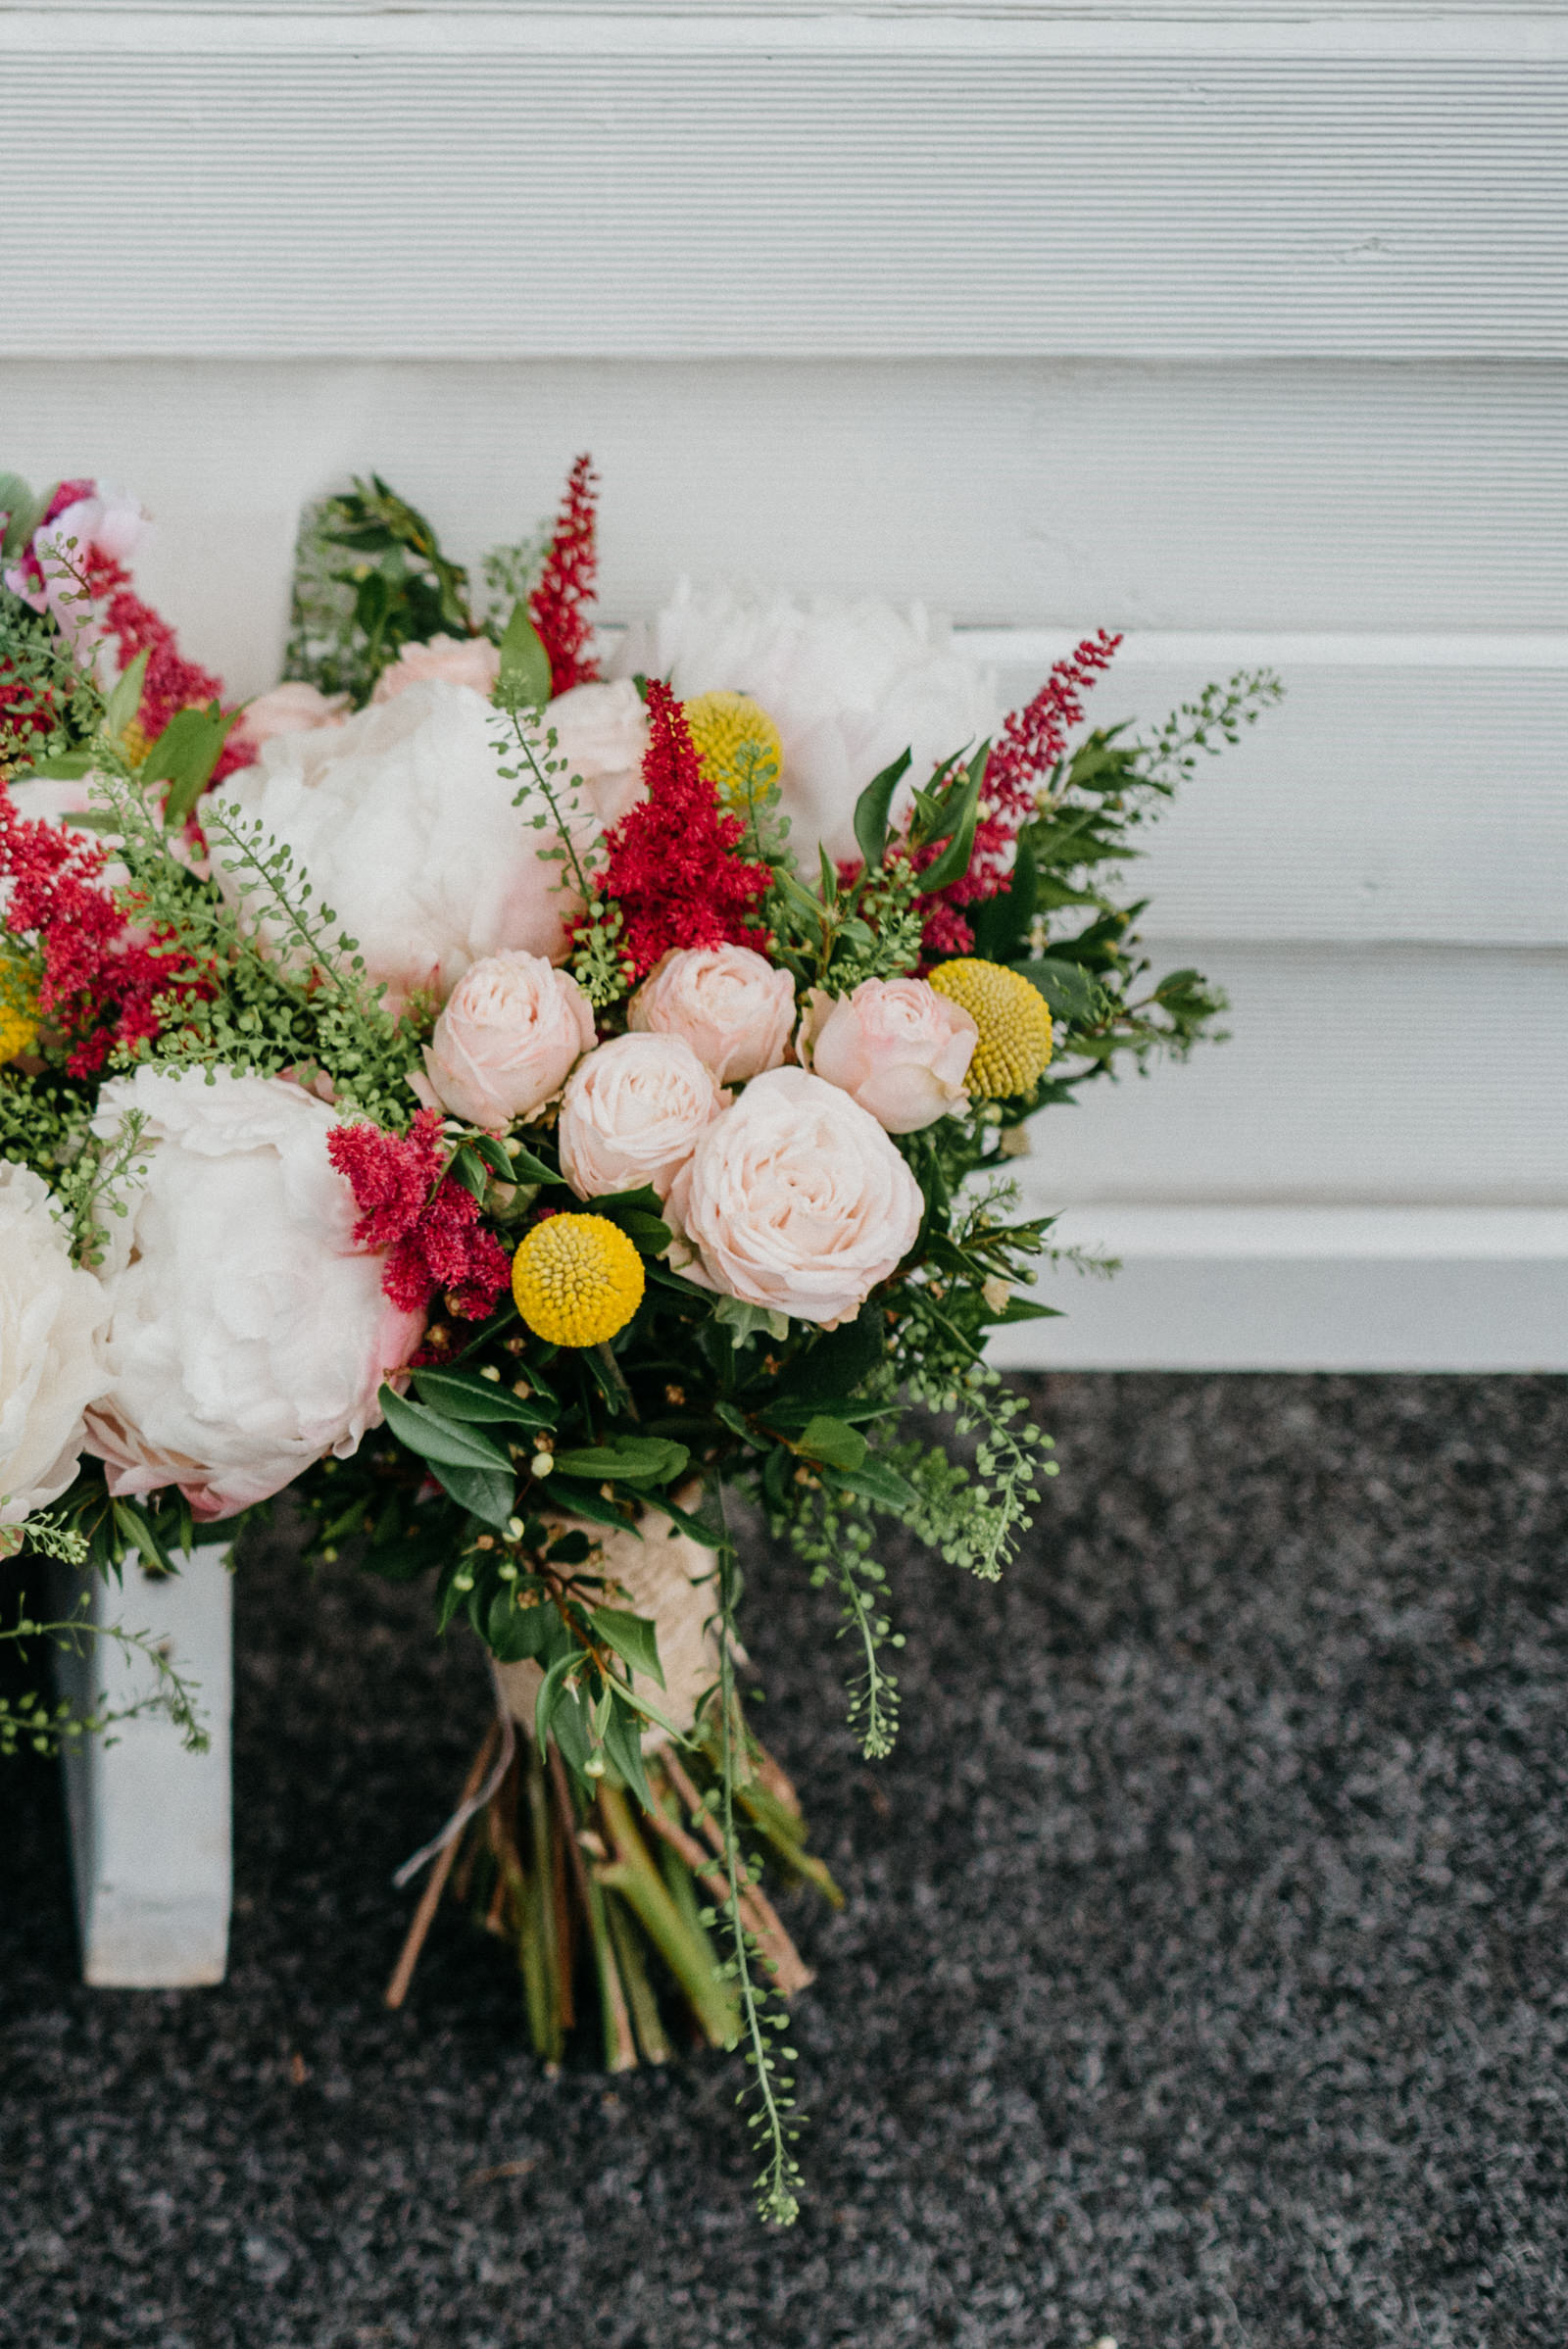 Brides bouquet of pale pink peonies and roses, astilbe and Craspedia